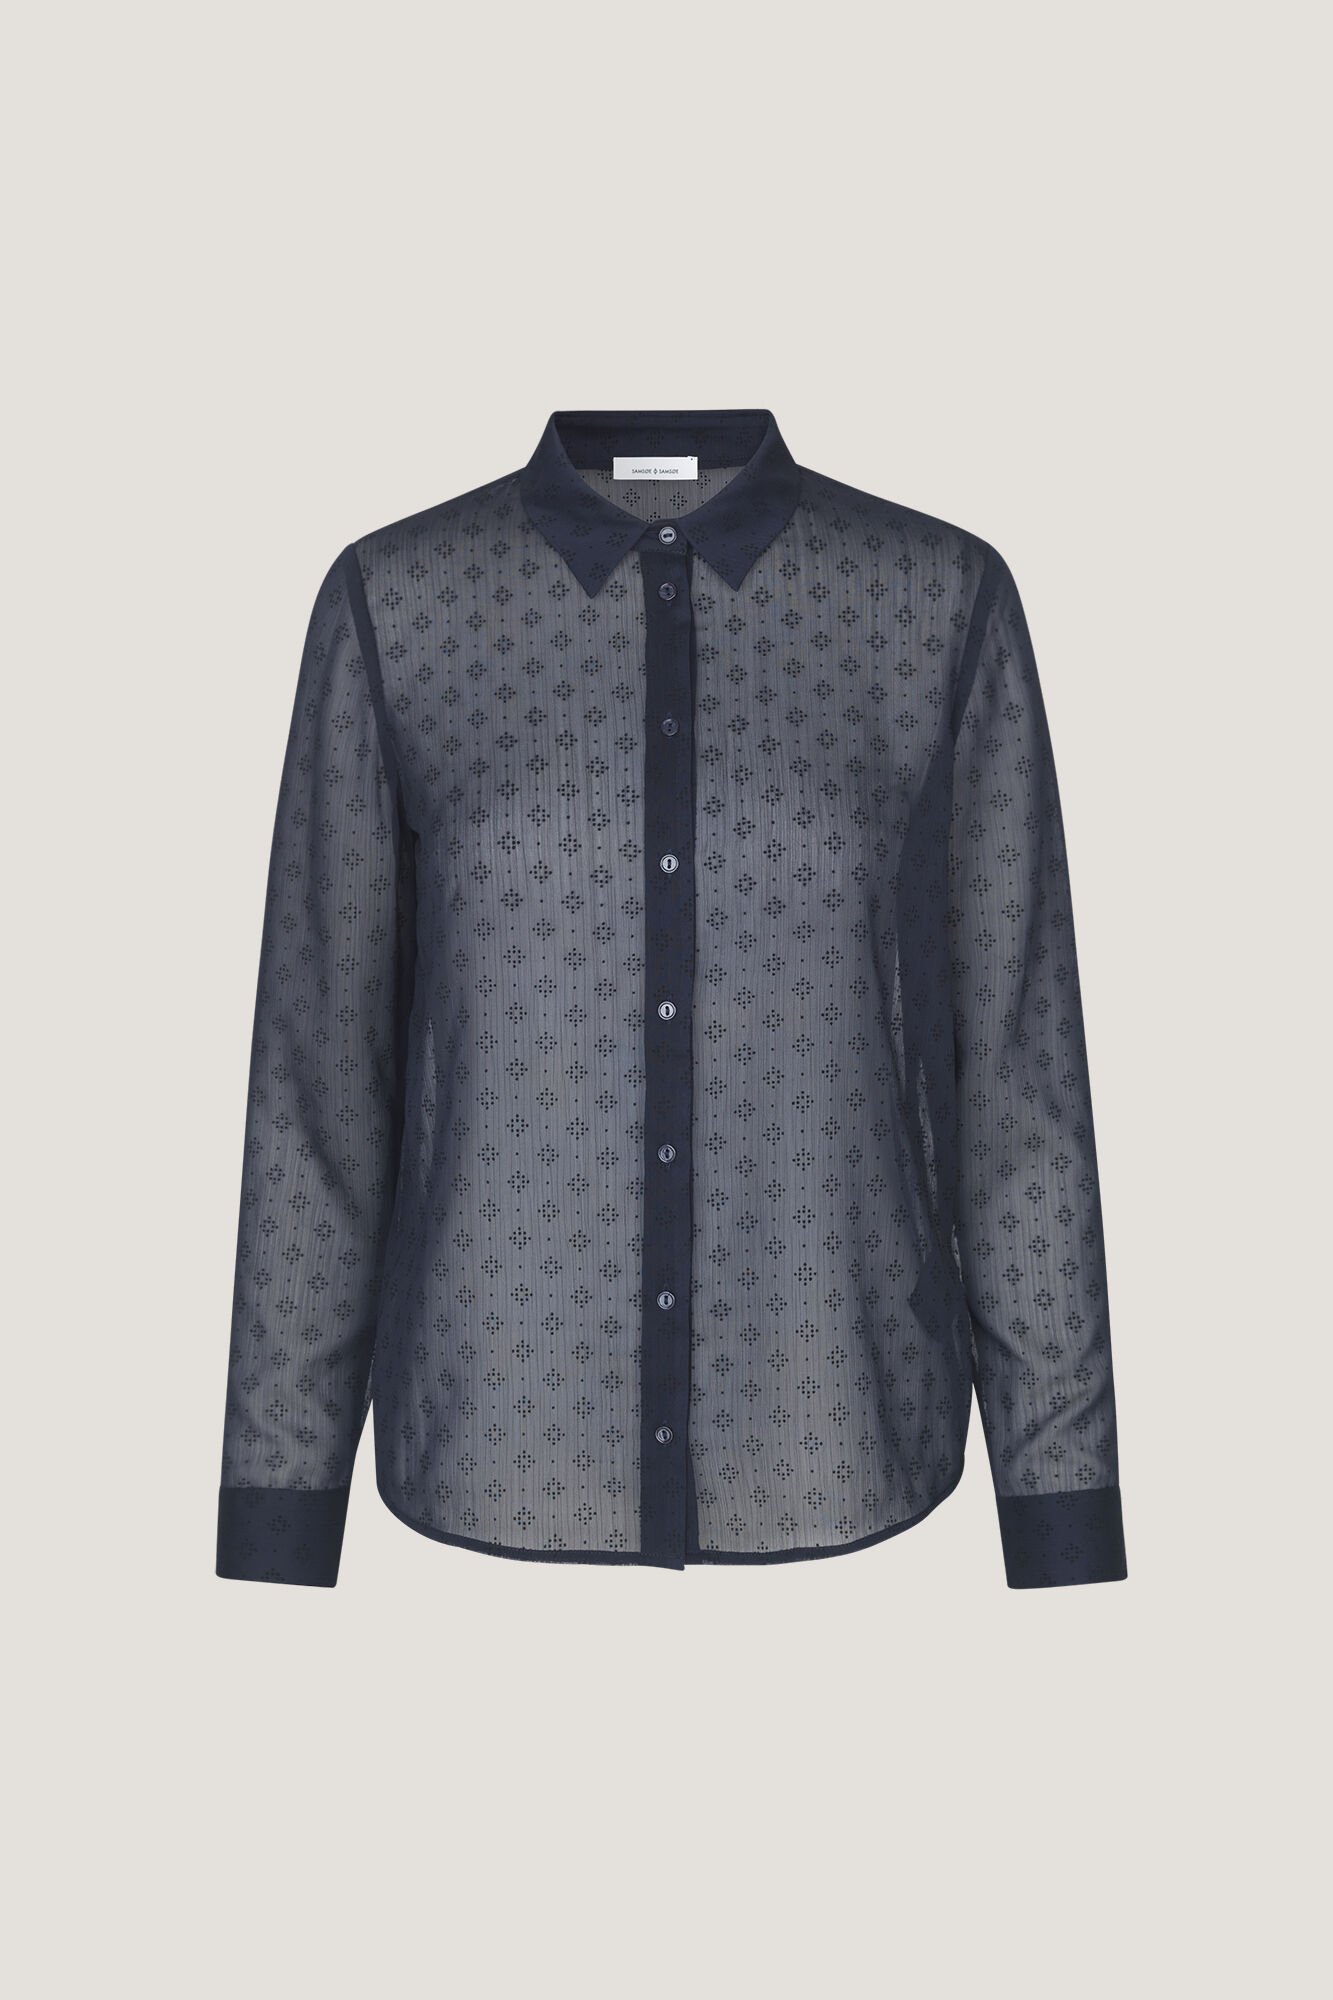 Milly np shirt 10857